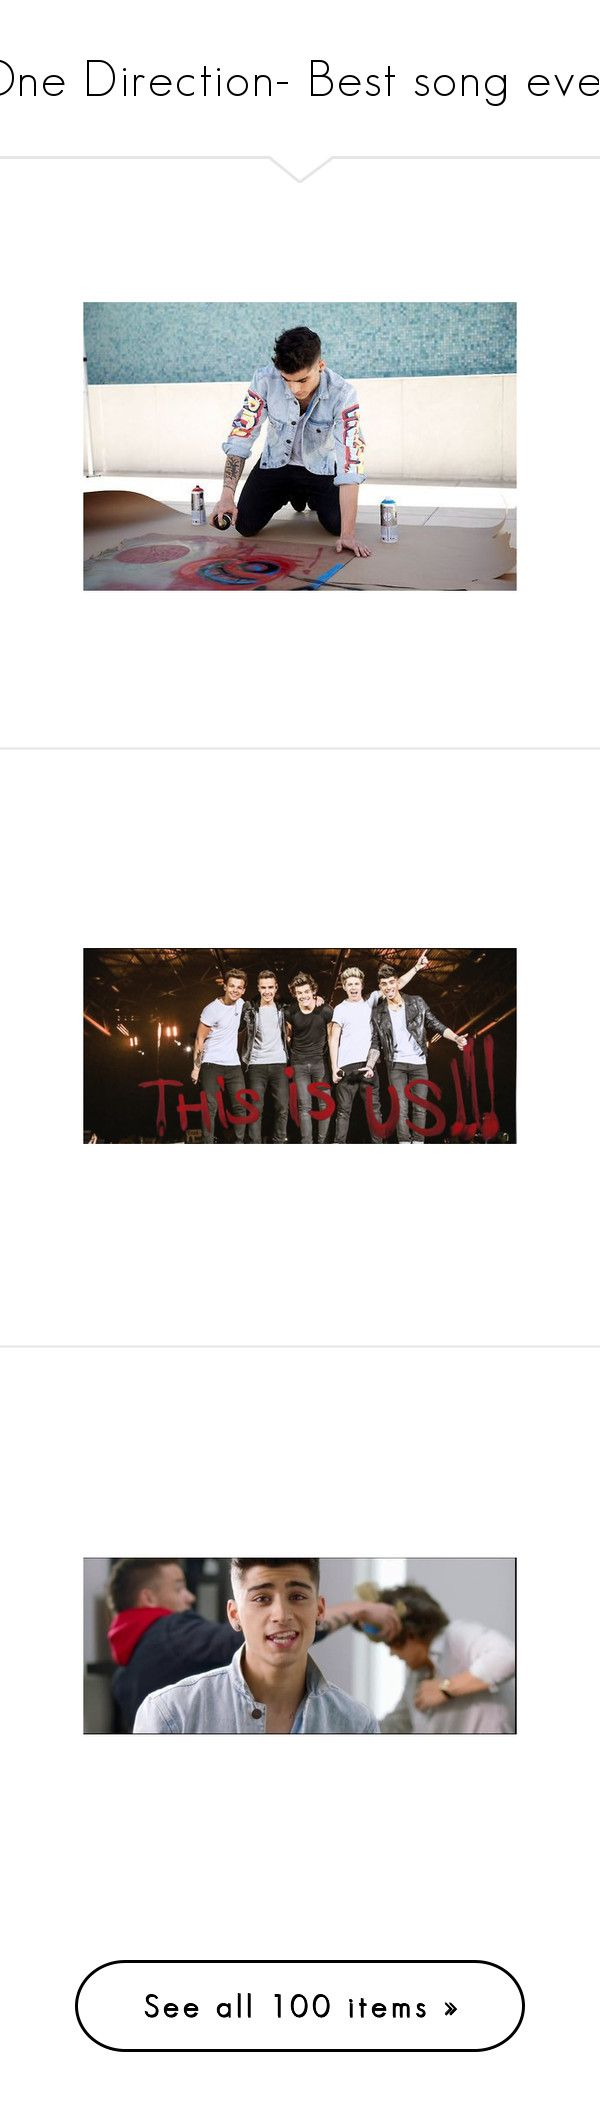 """One Direction- Best song ever."" by ma-sandbote ❤ liked on Polyvore featuring one direction, zayn malik, 1d, best song ever, zayn, images, marcel, harry, harry styles and bse"